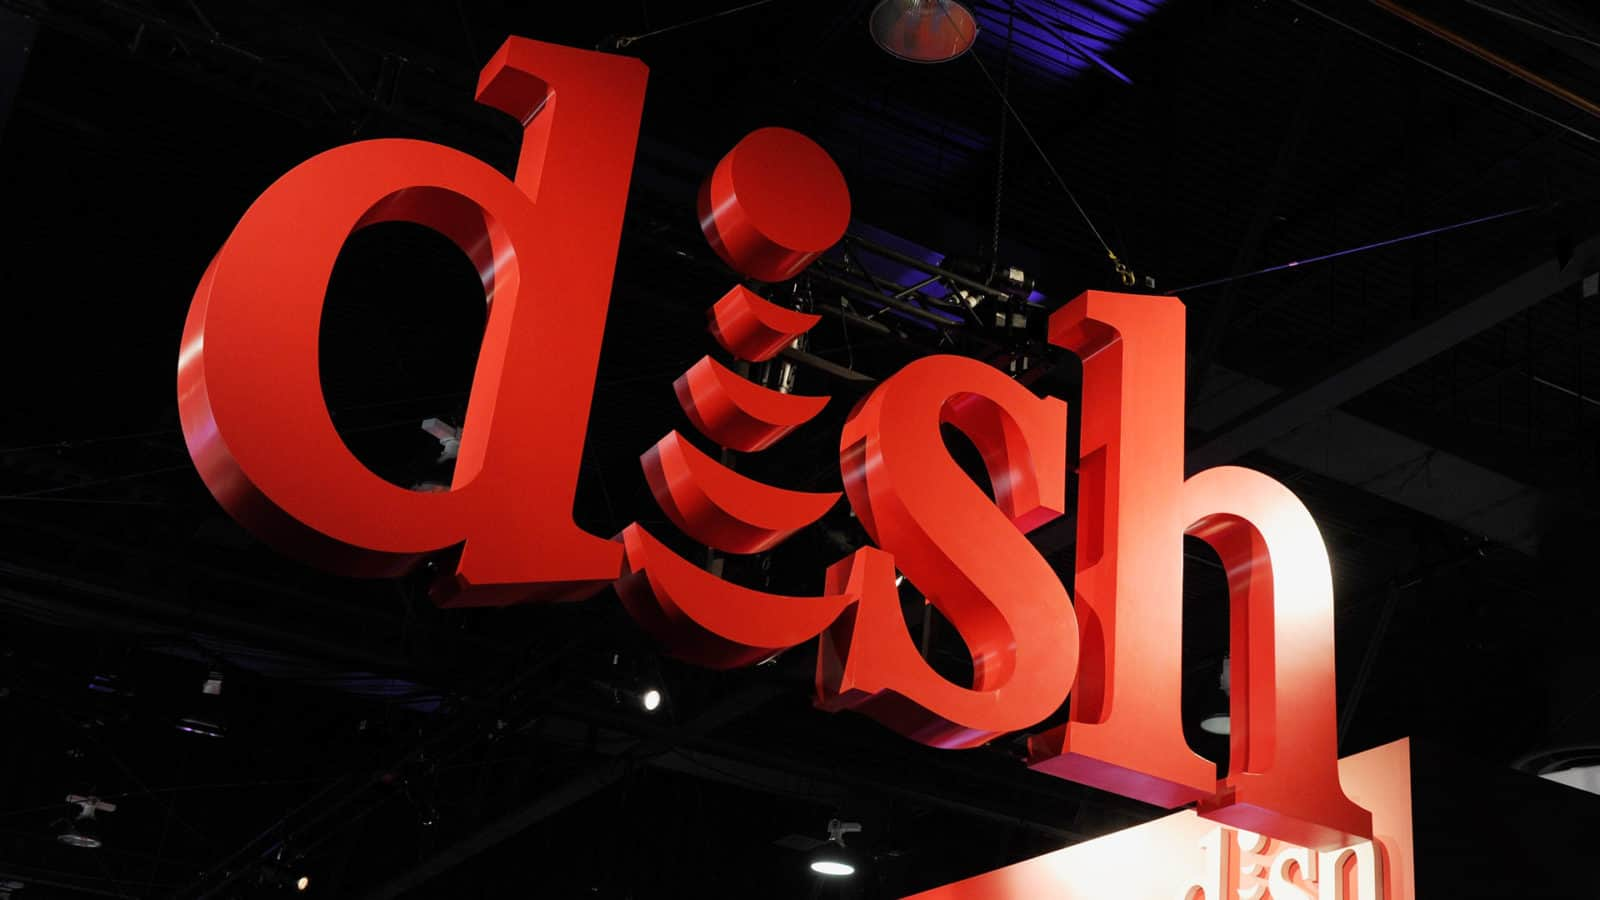 Dish Network logo big